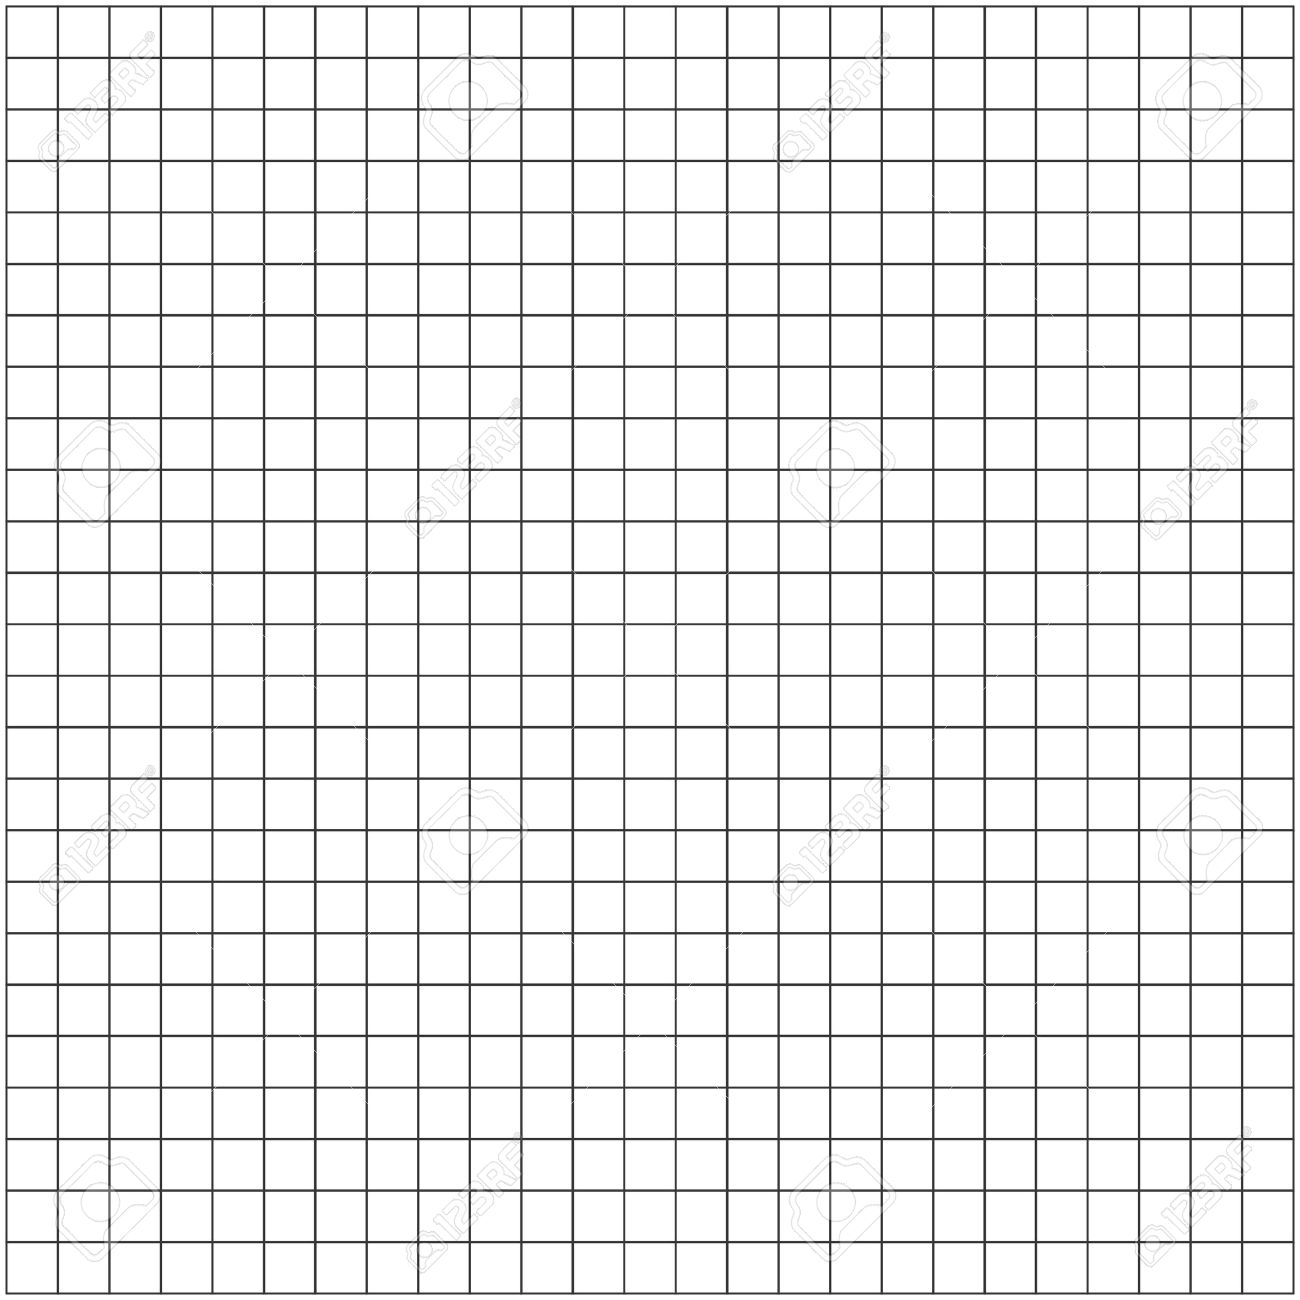 worksheet Graph Papaer graph paper illustrator background eps10 royalty free cliparts stock vector 18981869